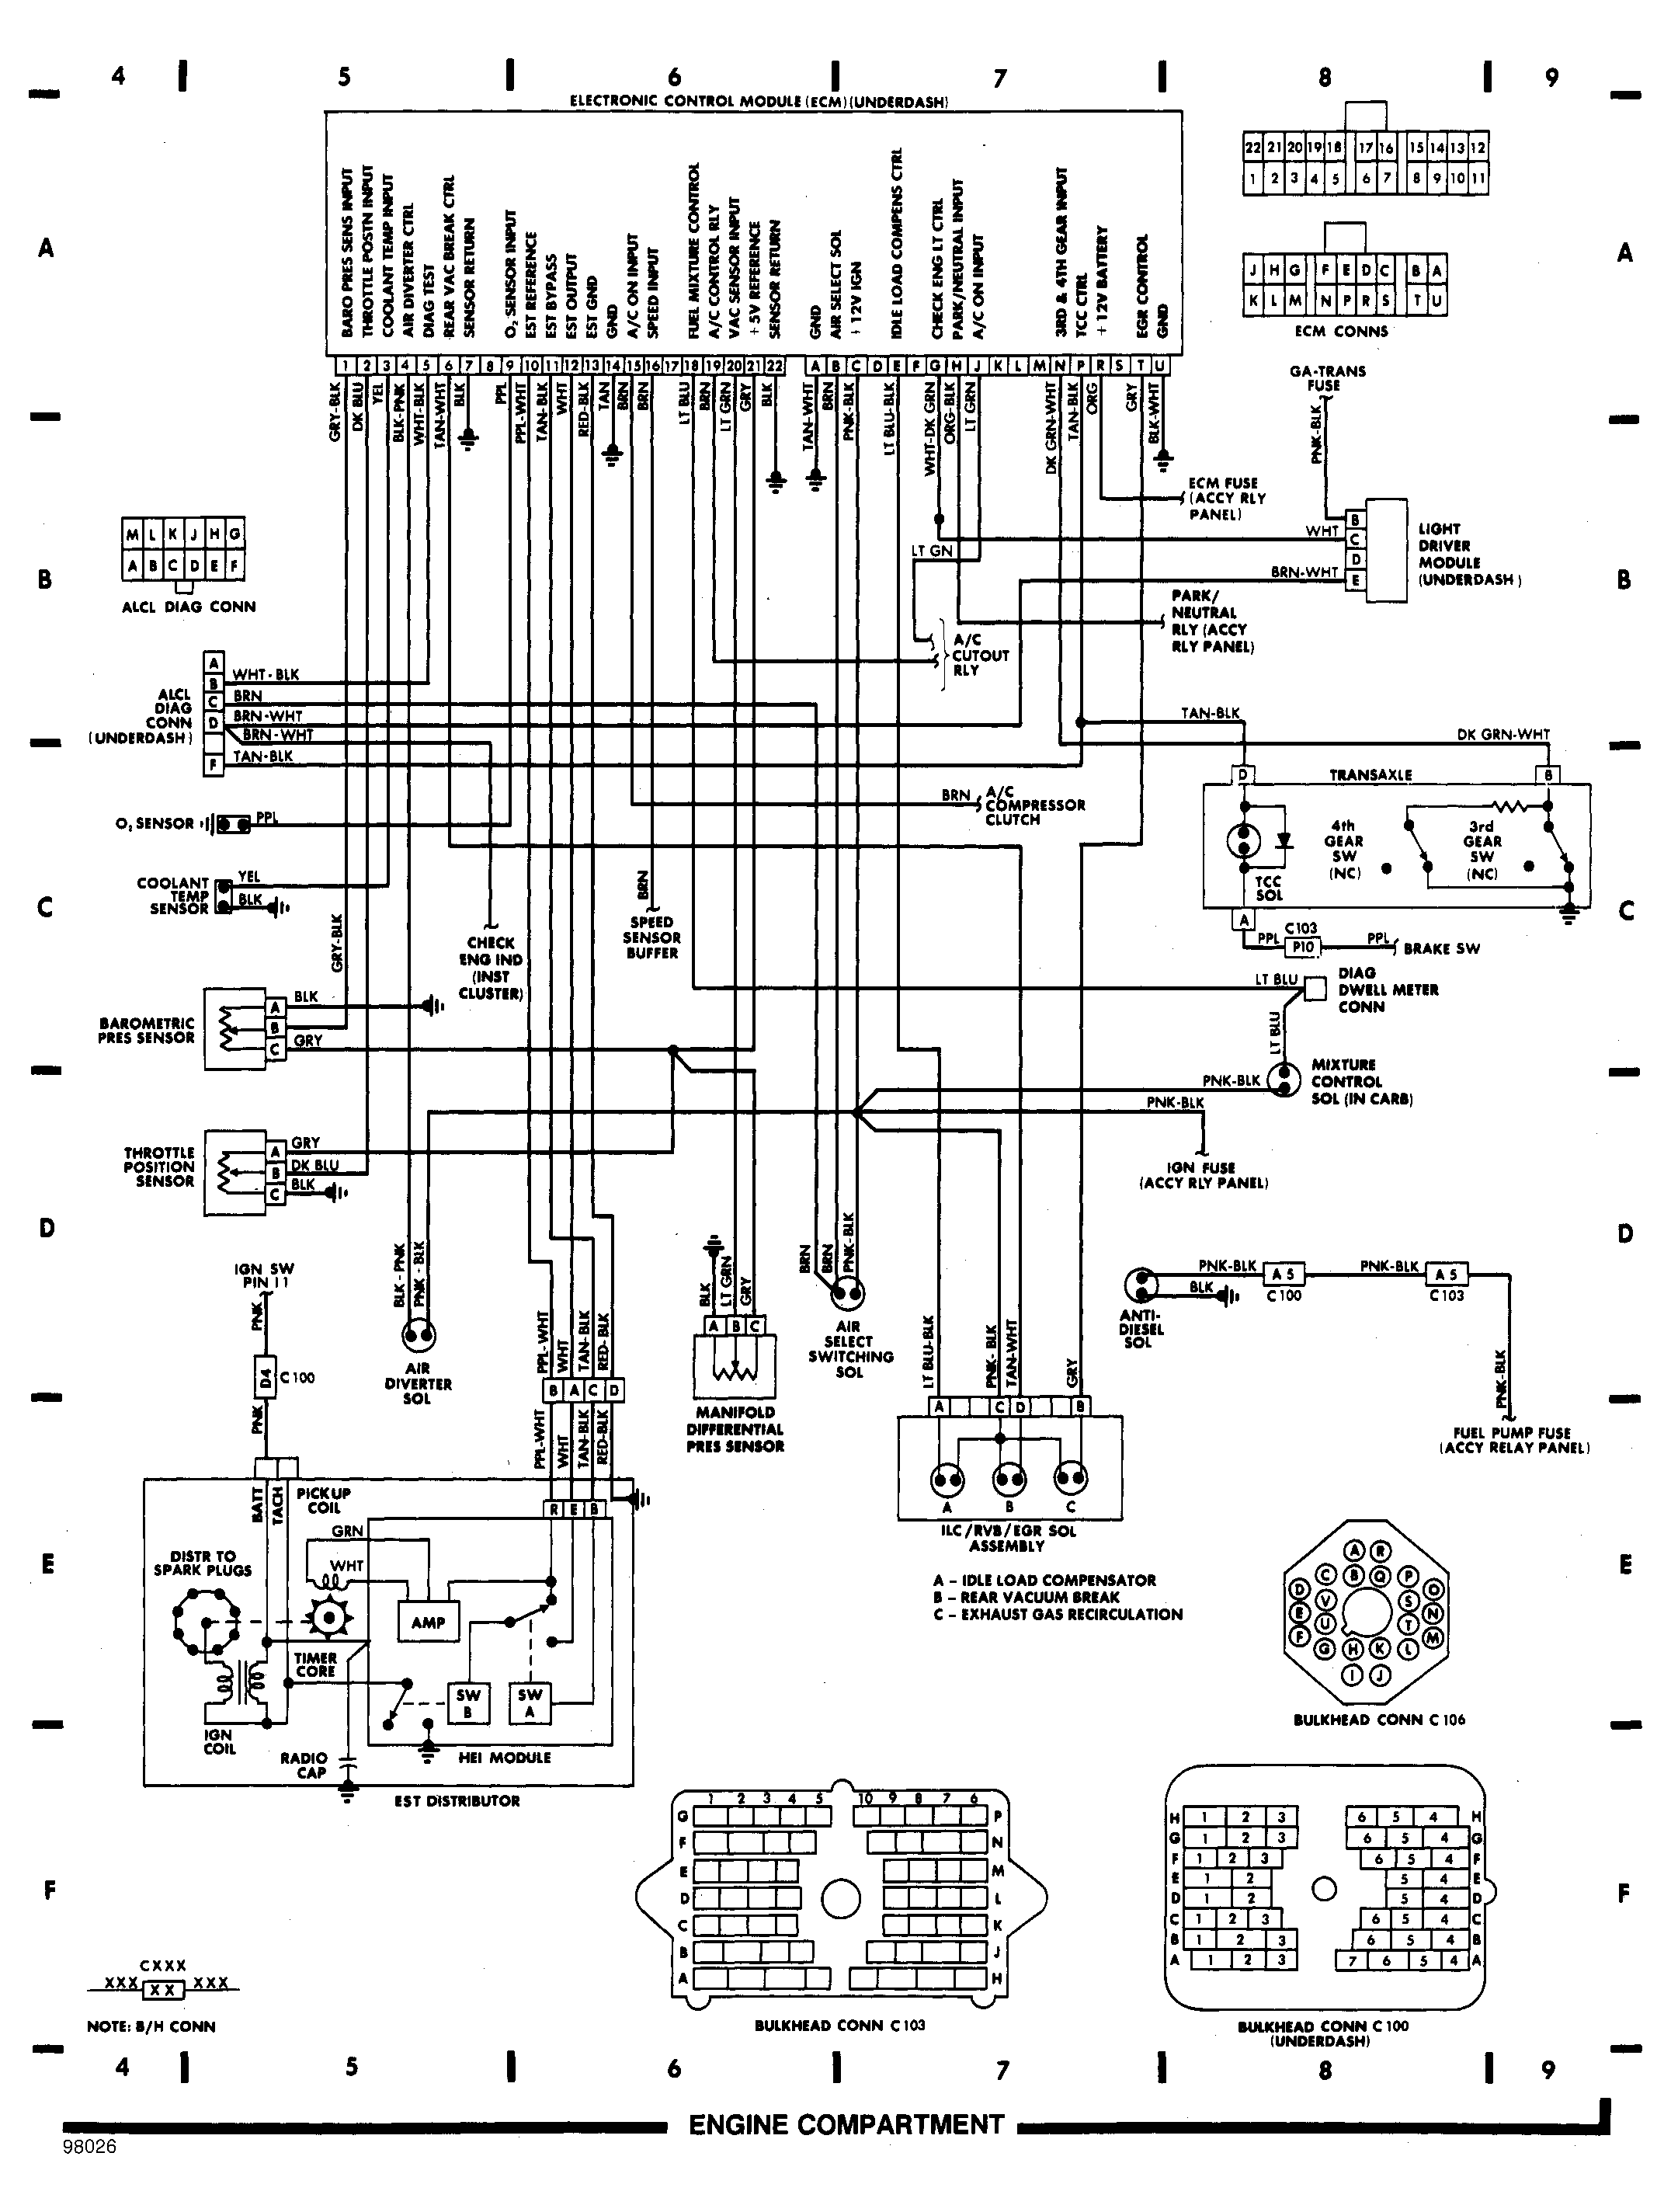 ☑ 1994 southwind wiring diagram hd quality ☑ cluster-diagrams .twirlinglucca.it  twirlinglucca.it